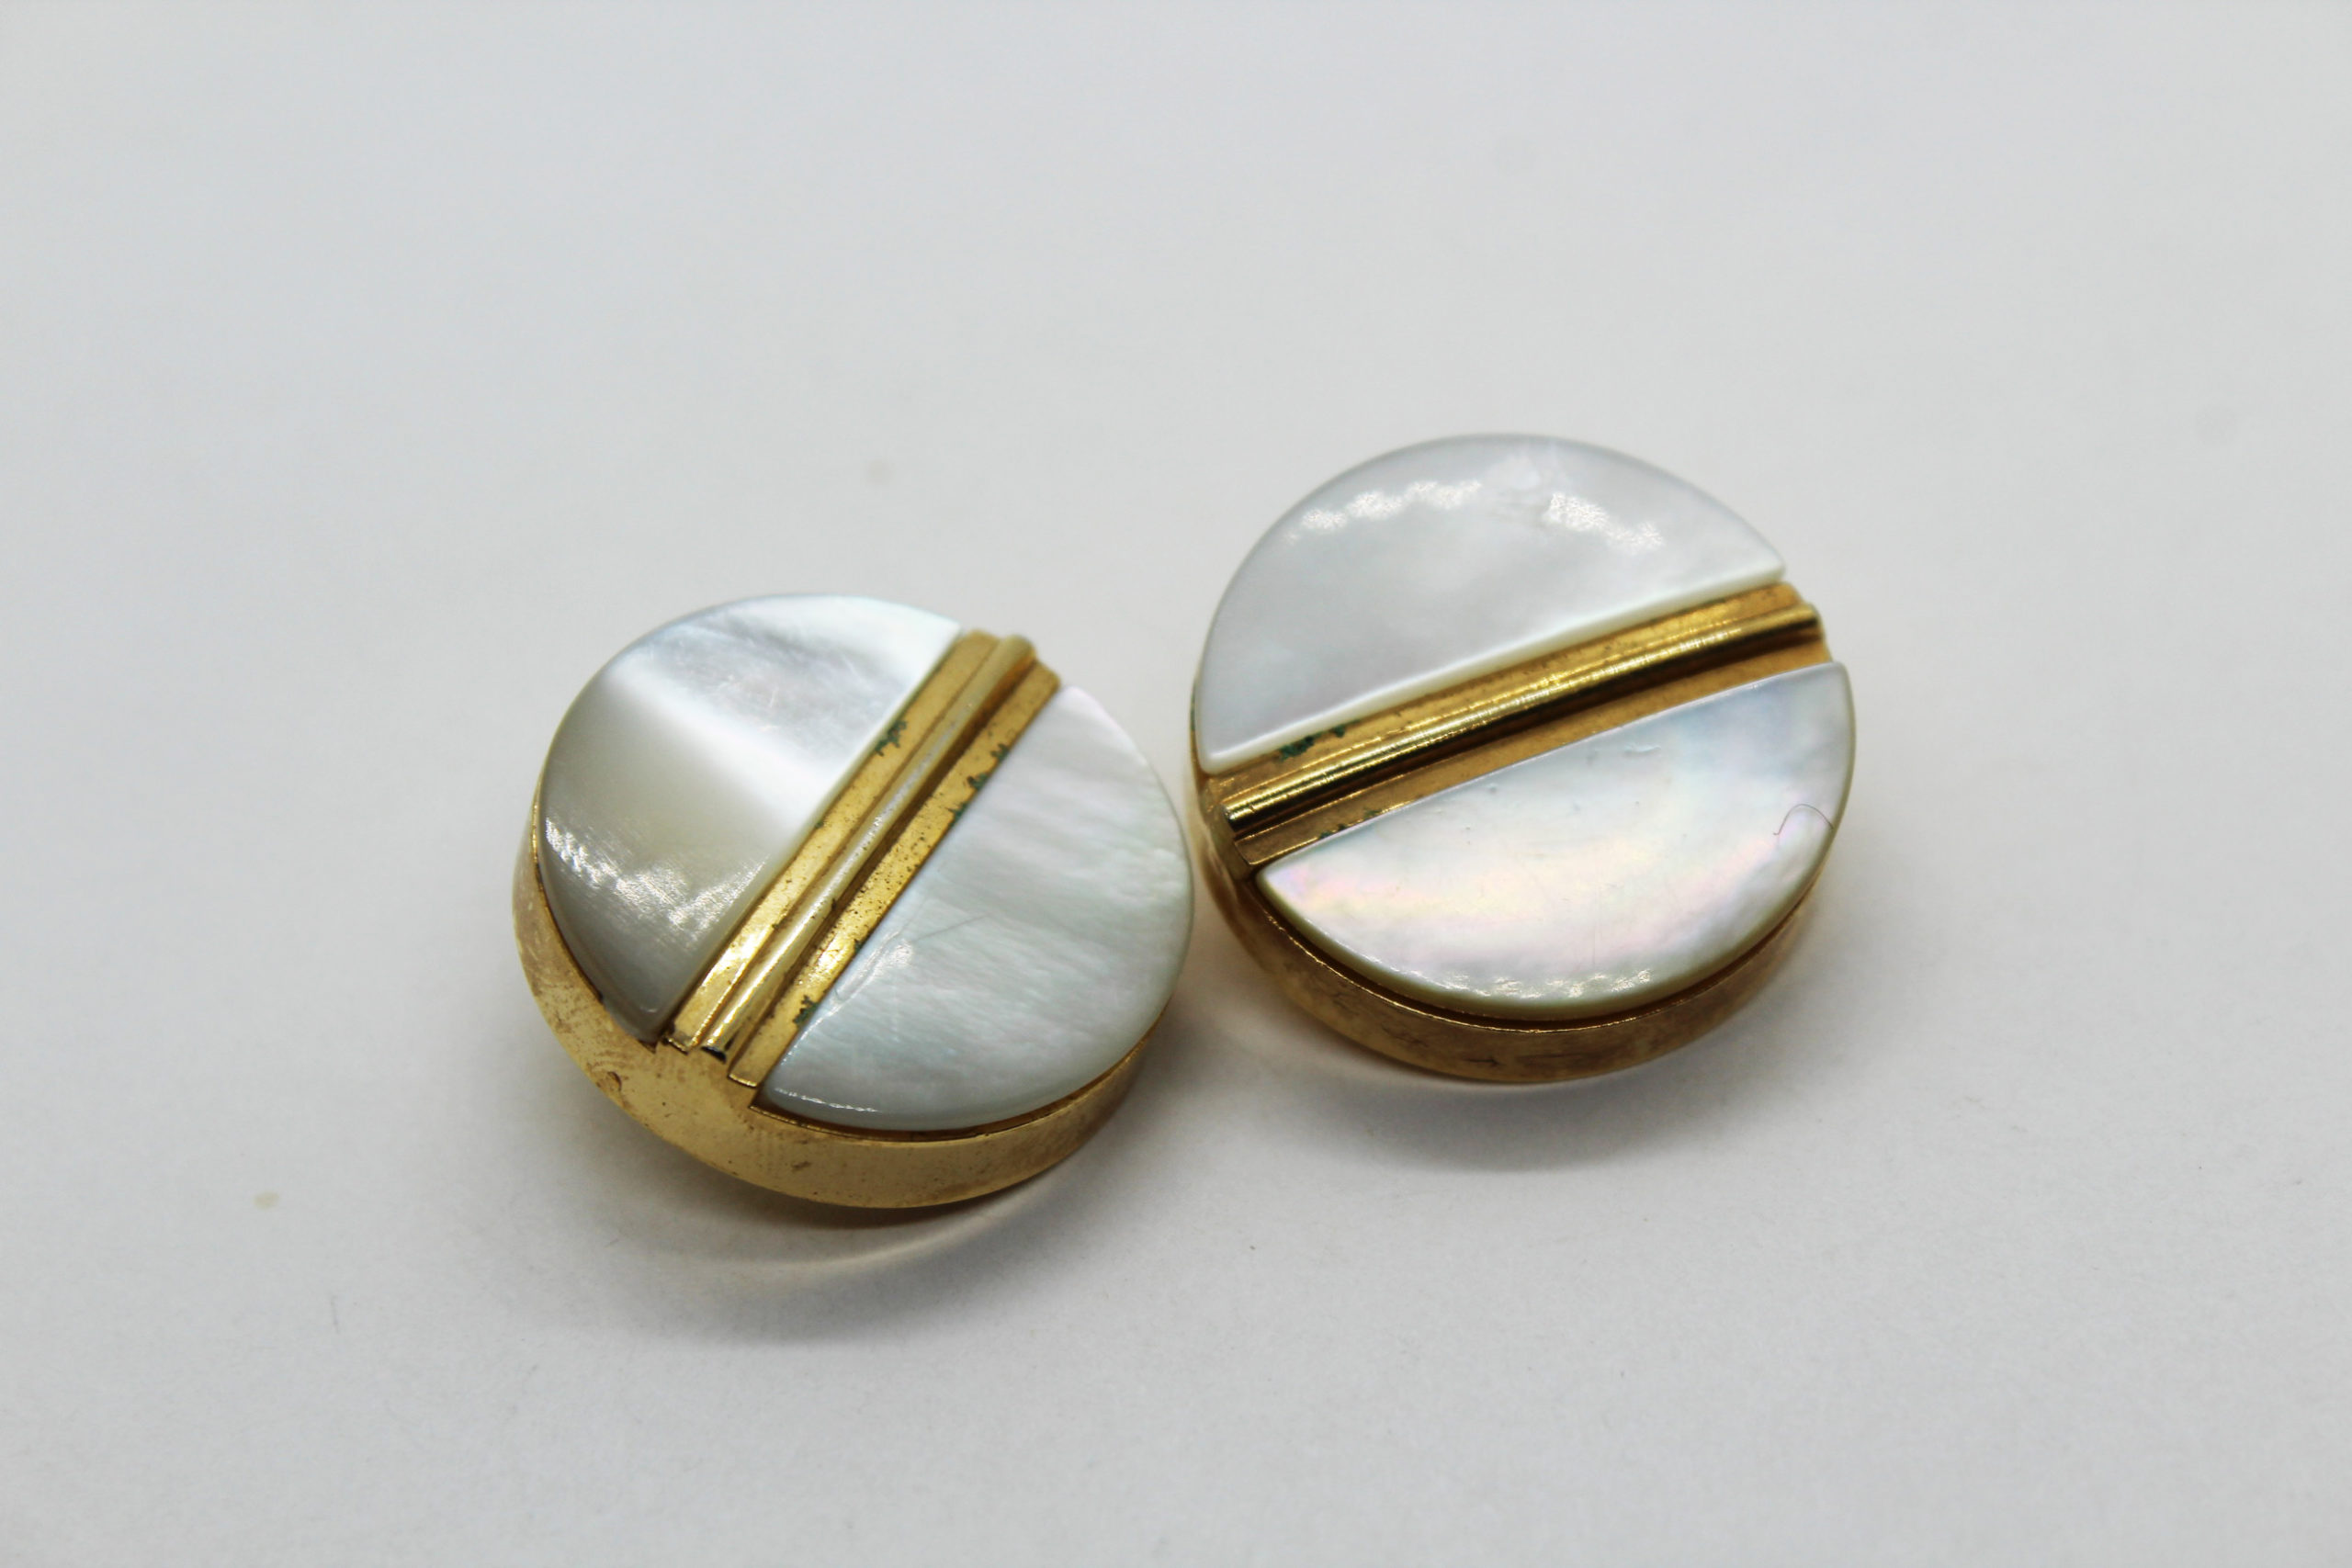 Vintage Secondo Stefano Pavese Mother of Pearl Buttons – Set of 2 | Whispering City RVA